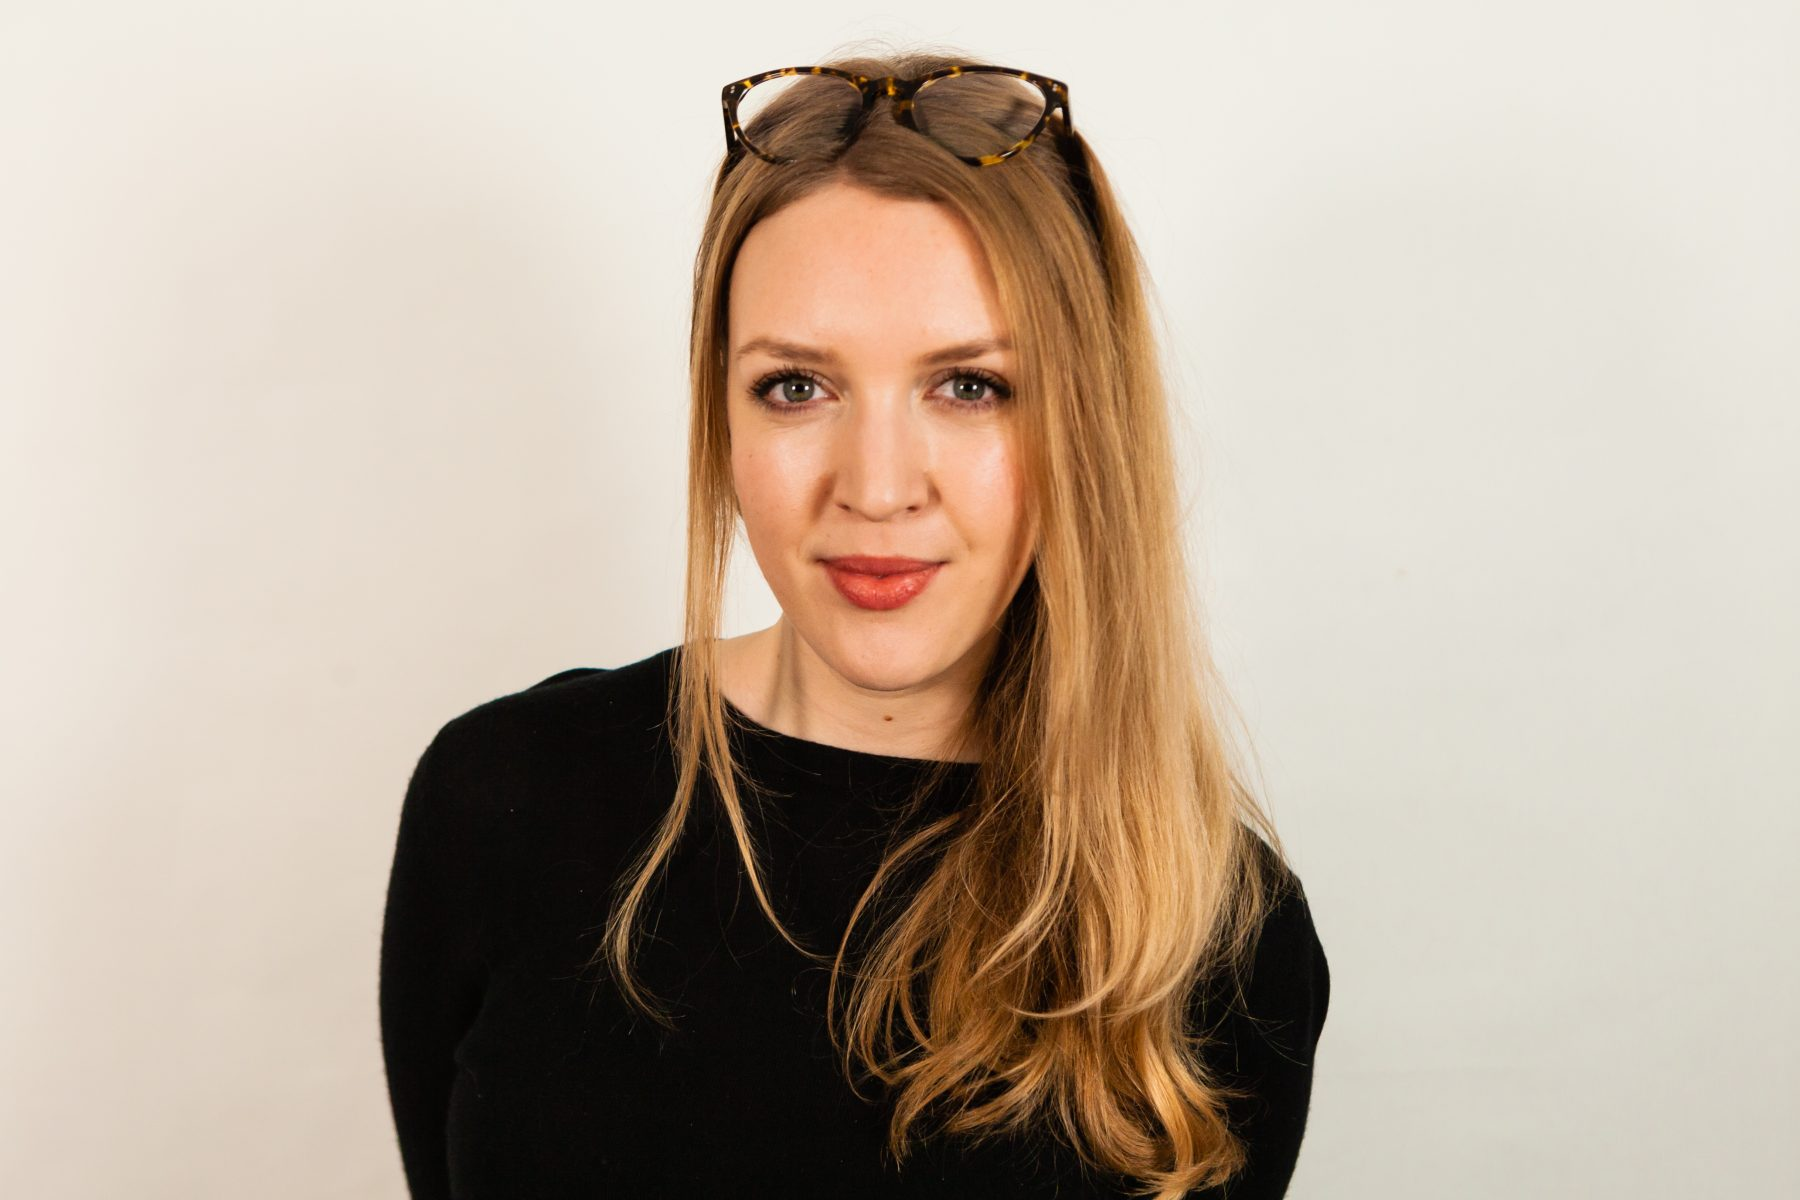 Catriona Conway-Mortimer is a member of the award-winning PR team at Holyrood PR agency in Edinburgh, Scotland